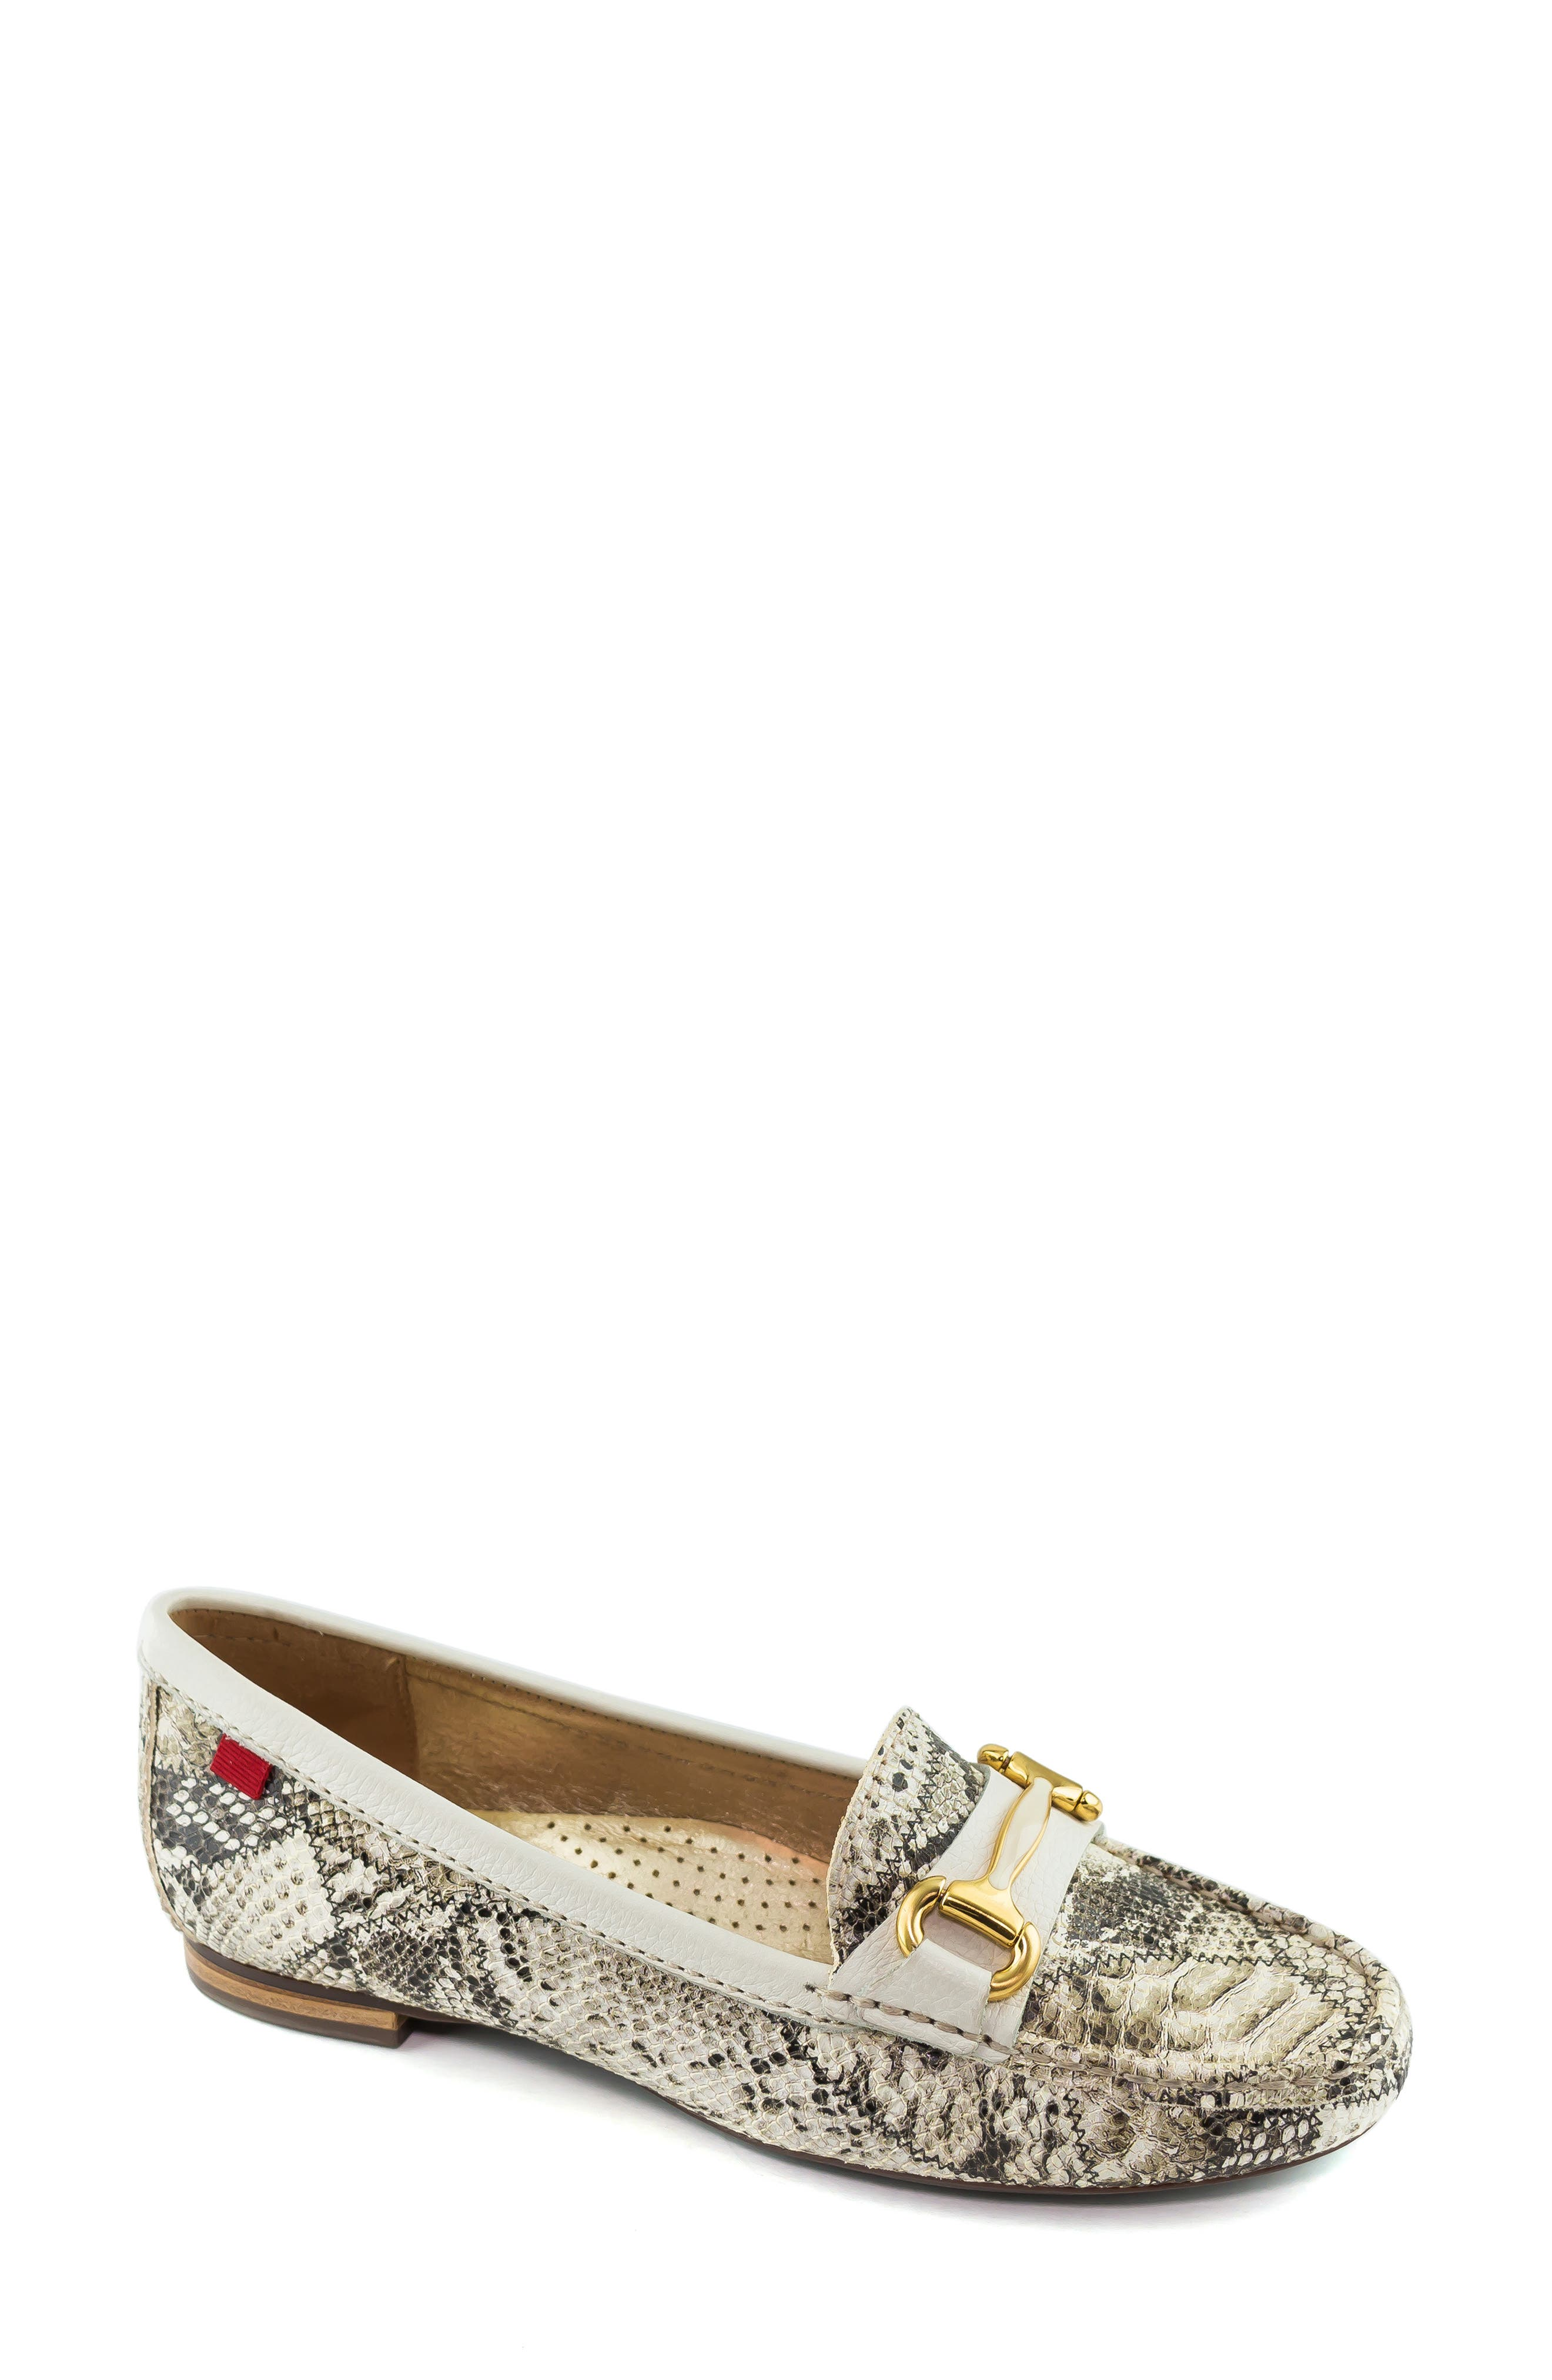 MARC JOSEPH NEW YORK Grand Street Loafer, Main, color, SNAKE PRINT LEATHER